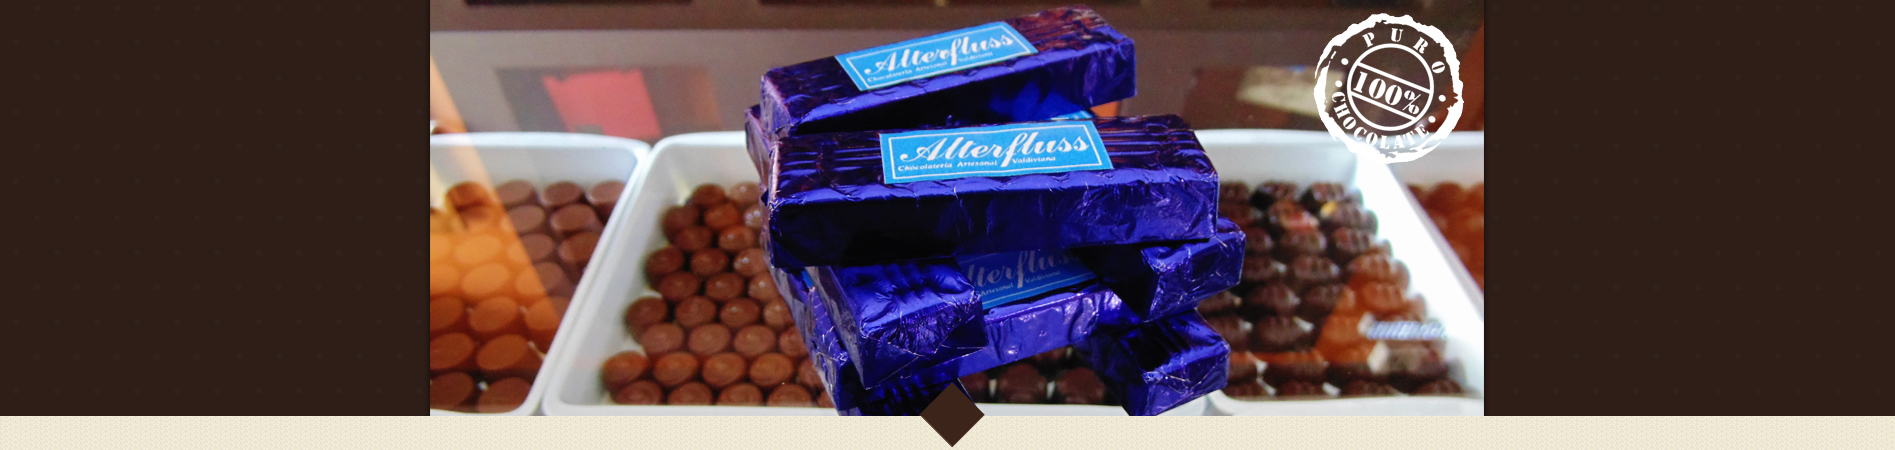 Alterflus | Chocolates Artesanales Valdivia